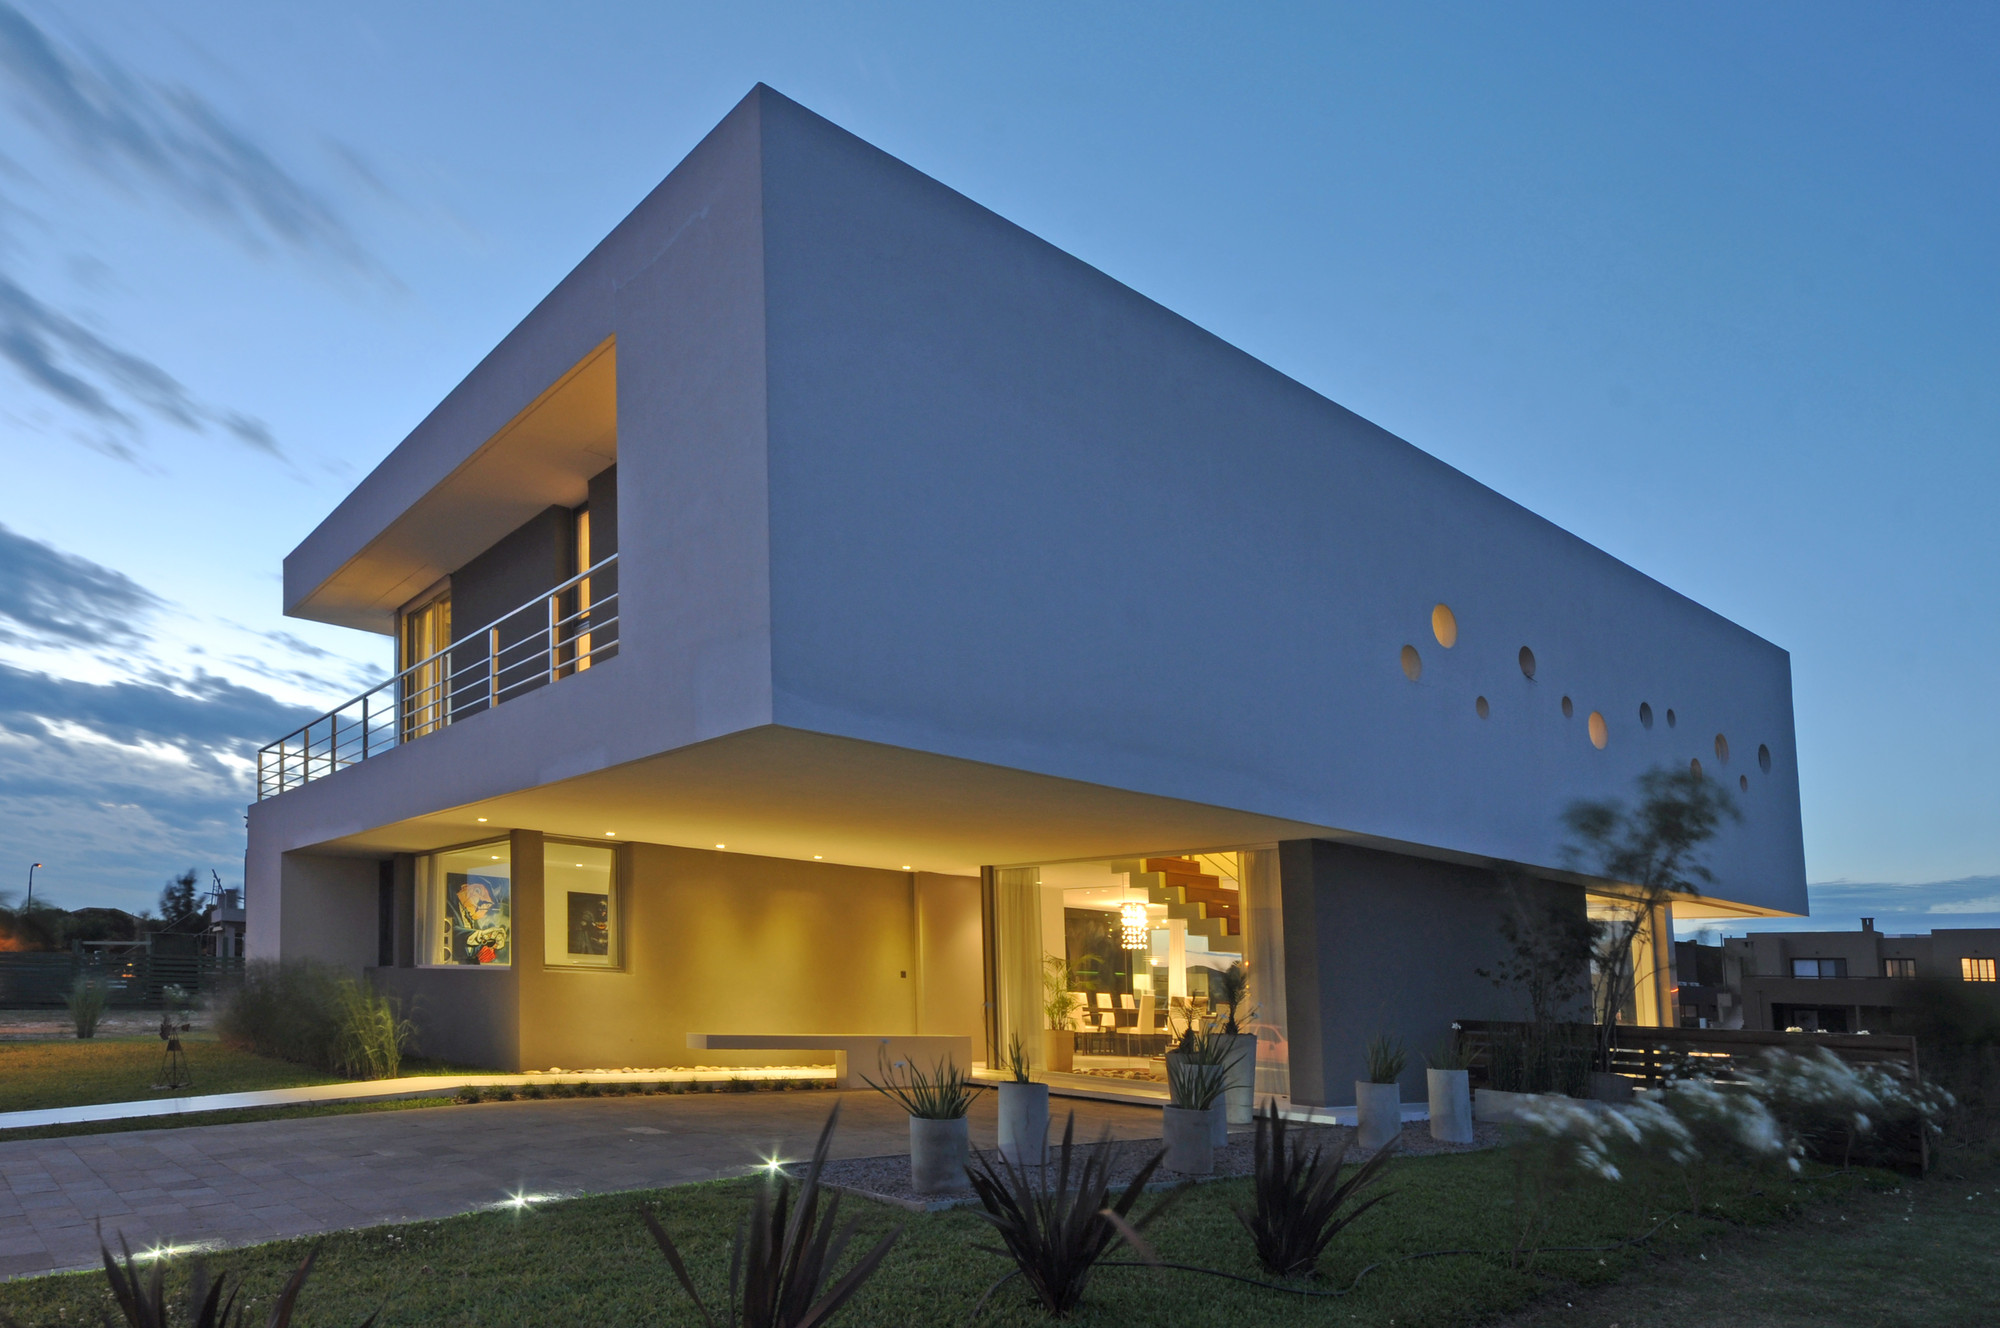 Cabo House / Vanguarda Architects, Courtesy of Vanguarda Architects